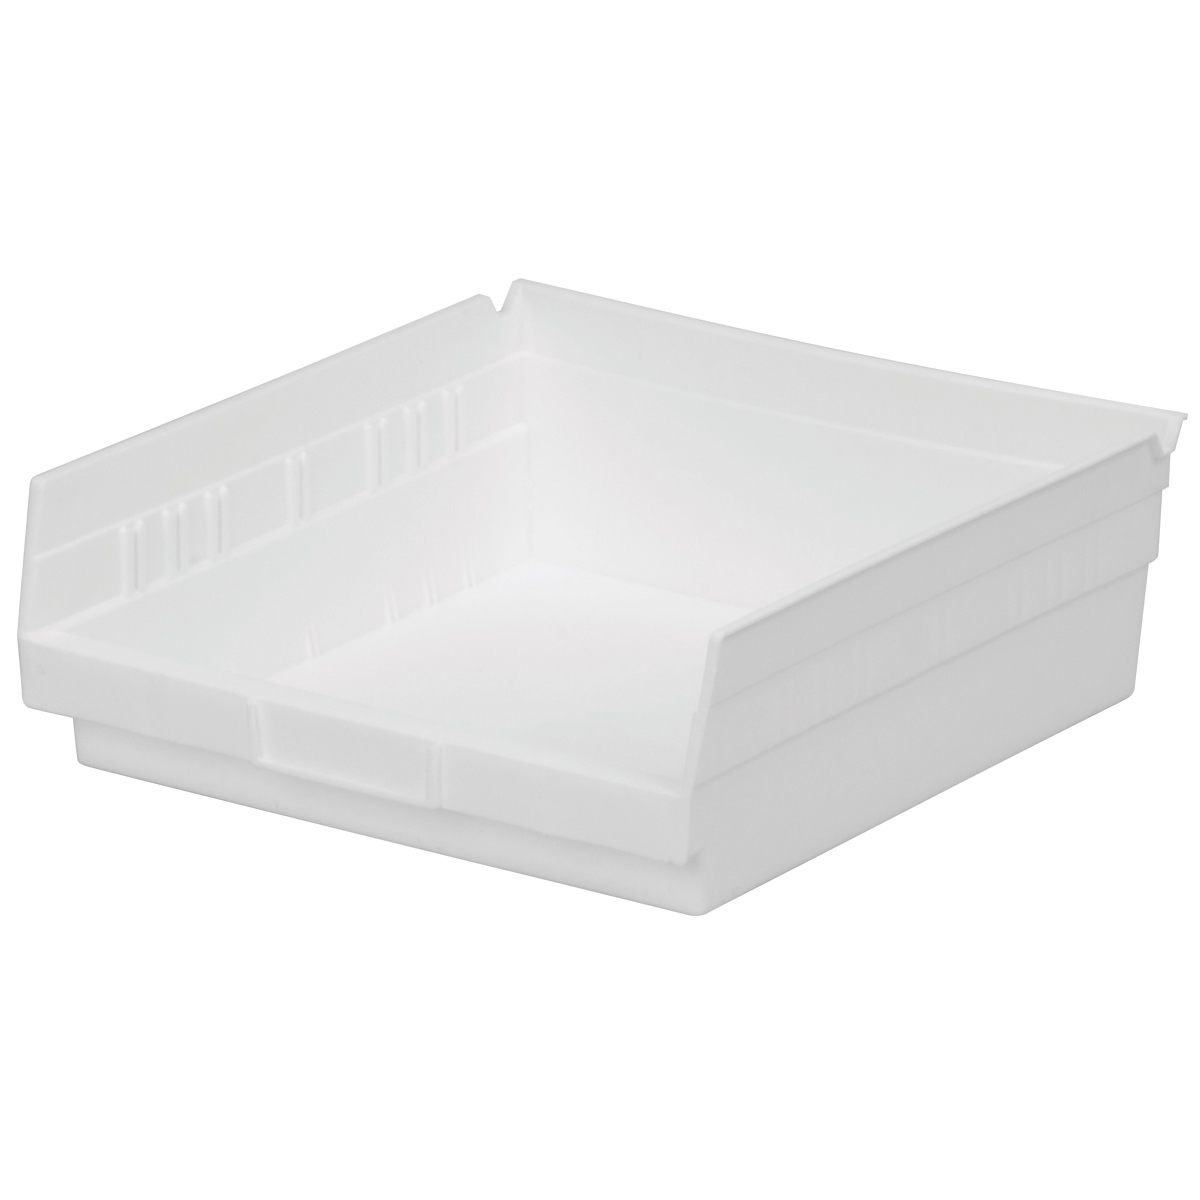 Shelf Bin 11-5/8 x 11-1/8 x 4, White (30170WHITE).  This item sold in carton quantities of 12.